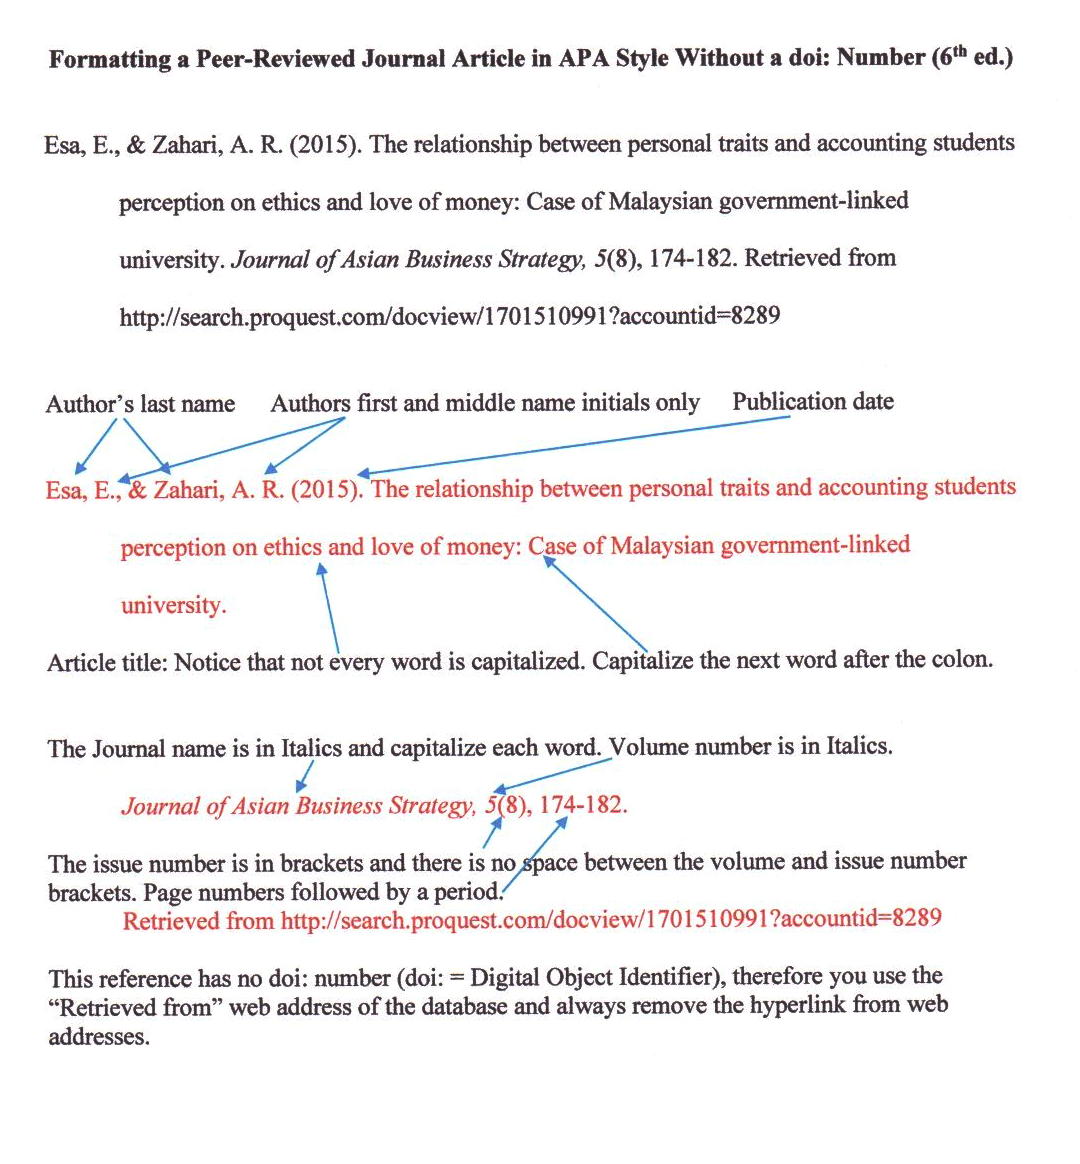 apa style journals Apa format citation generator for journal article - an ultimate tool for students and scholars apa referencing style for journal article, book, and newspaper appeared in 1929 this style is older than all authors, students, and researchers who use it today.